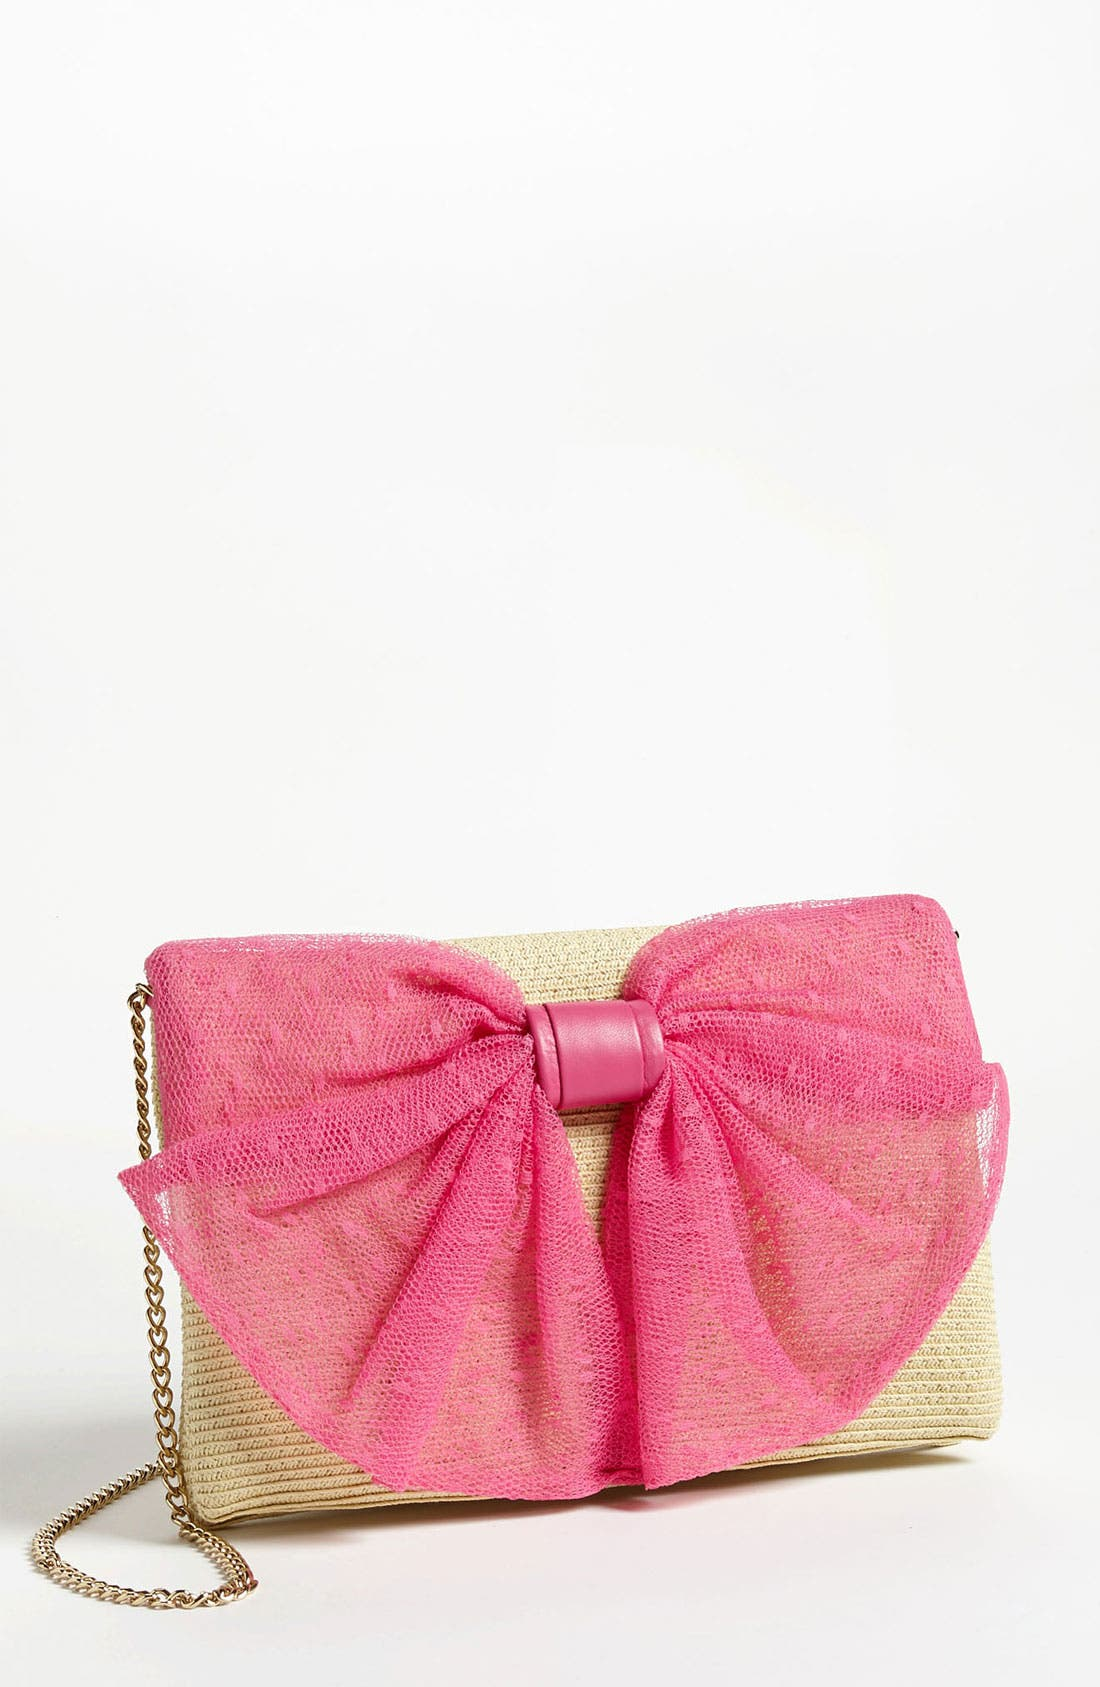 Alternate Image 1 Selected - RED Valentino 'Bow' Straw Crossbody Bag